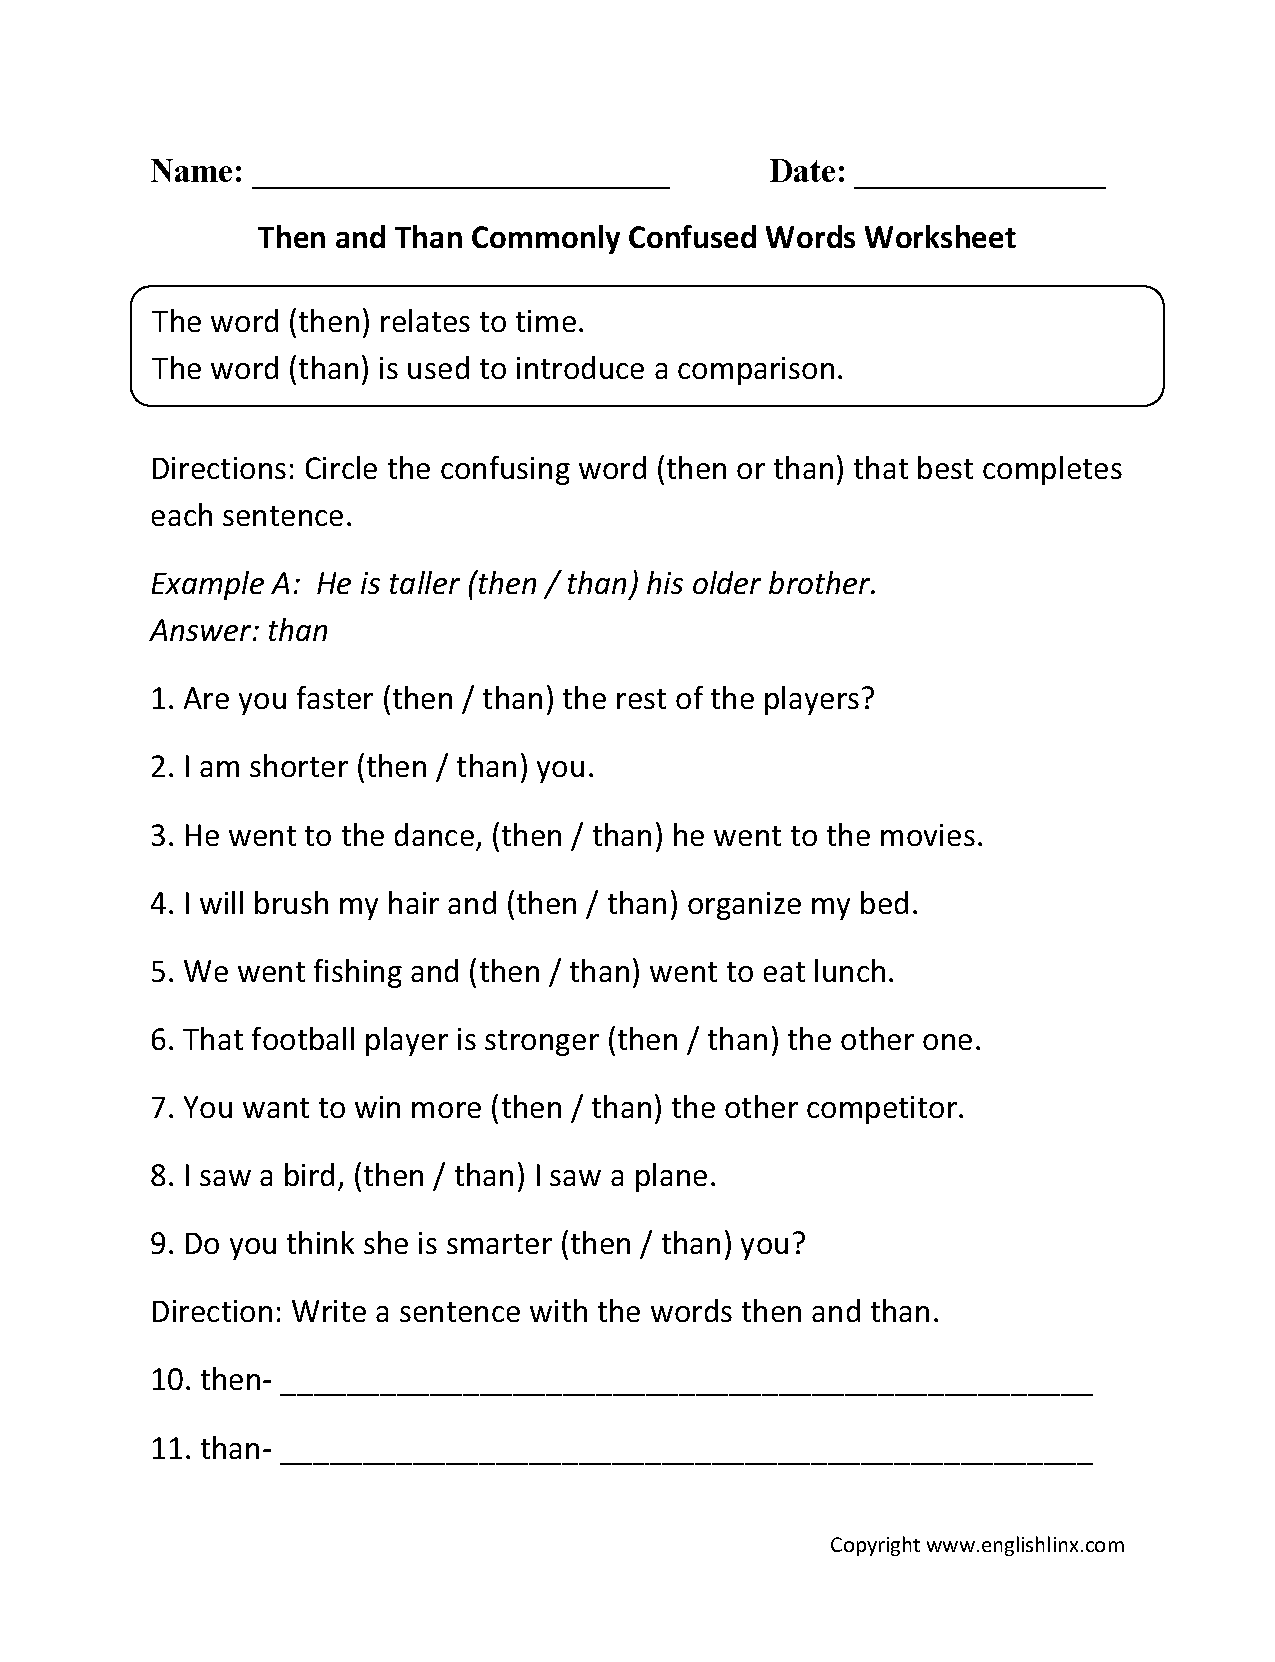 Uncategorized Then Vs Than Worksheet commonly confused words worksheets then vs than worksheets